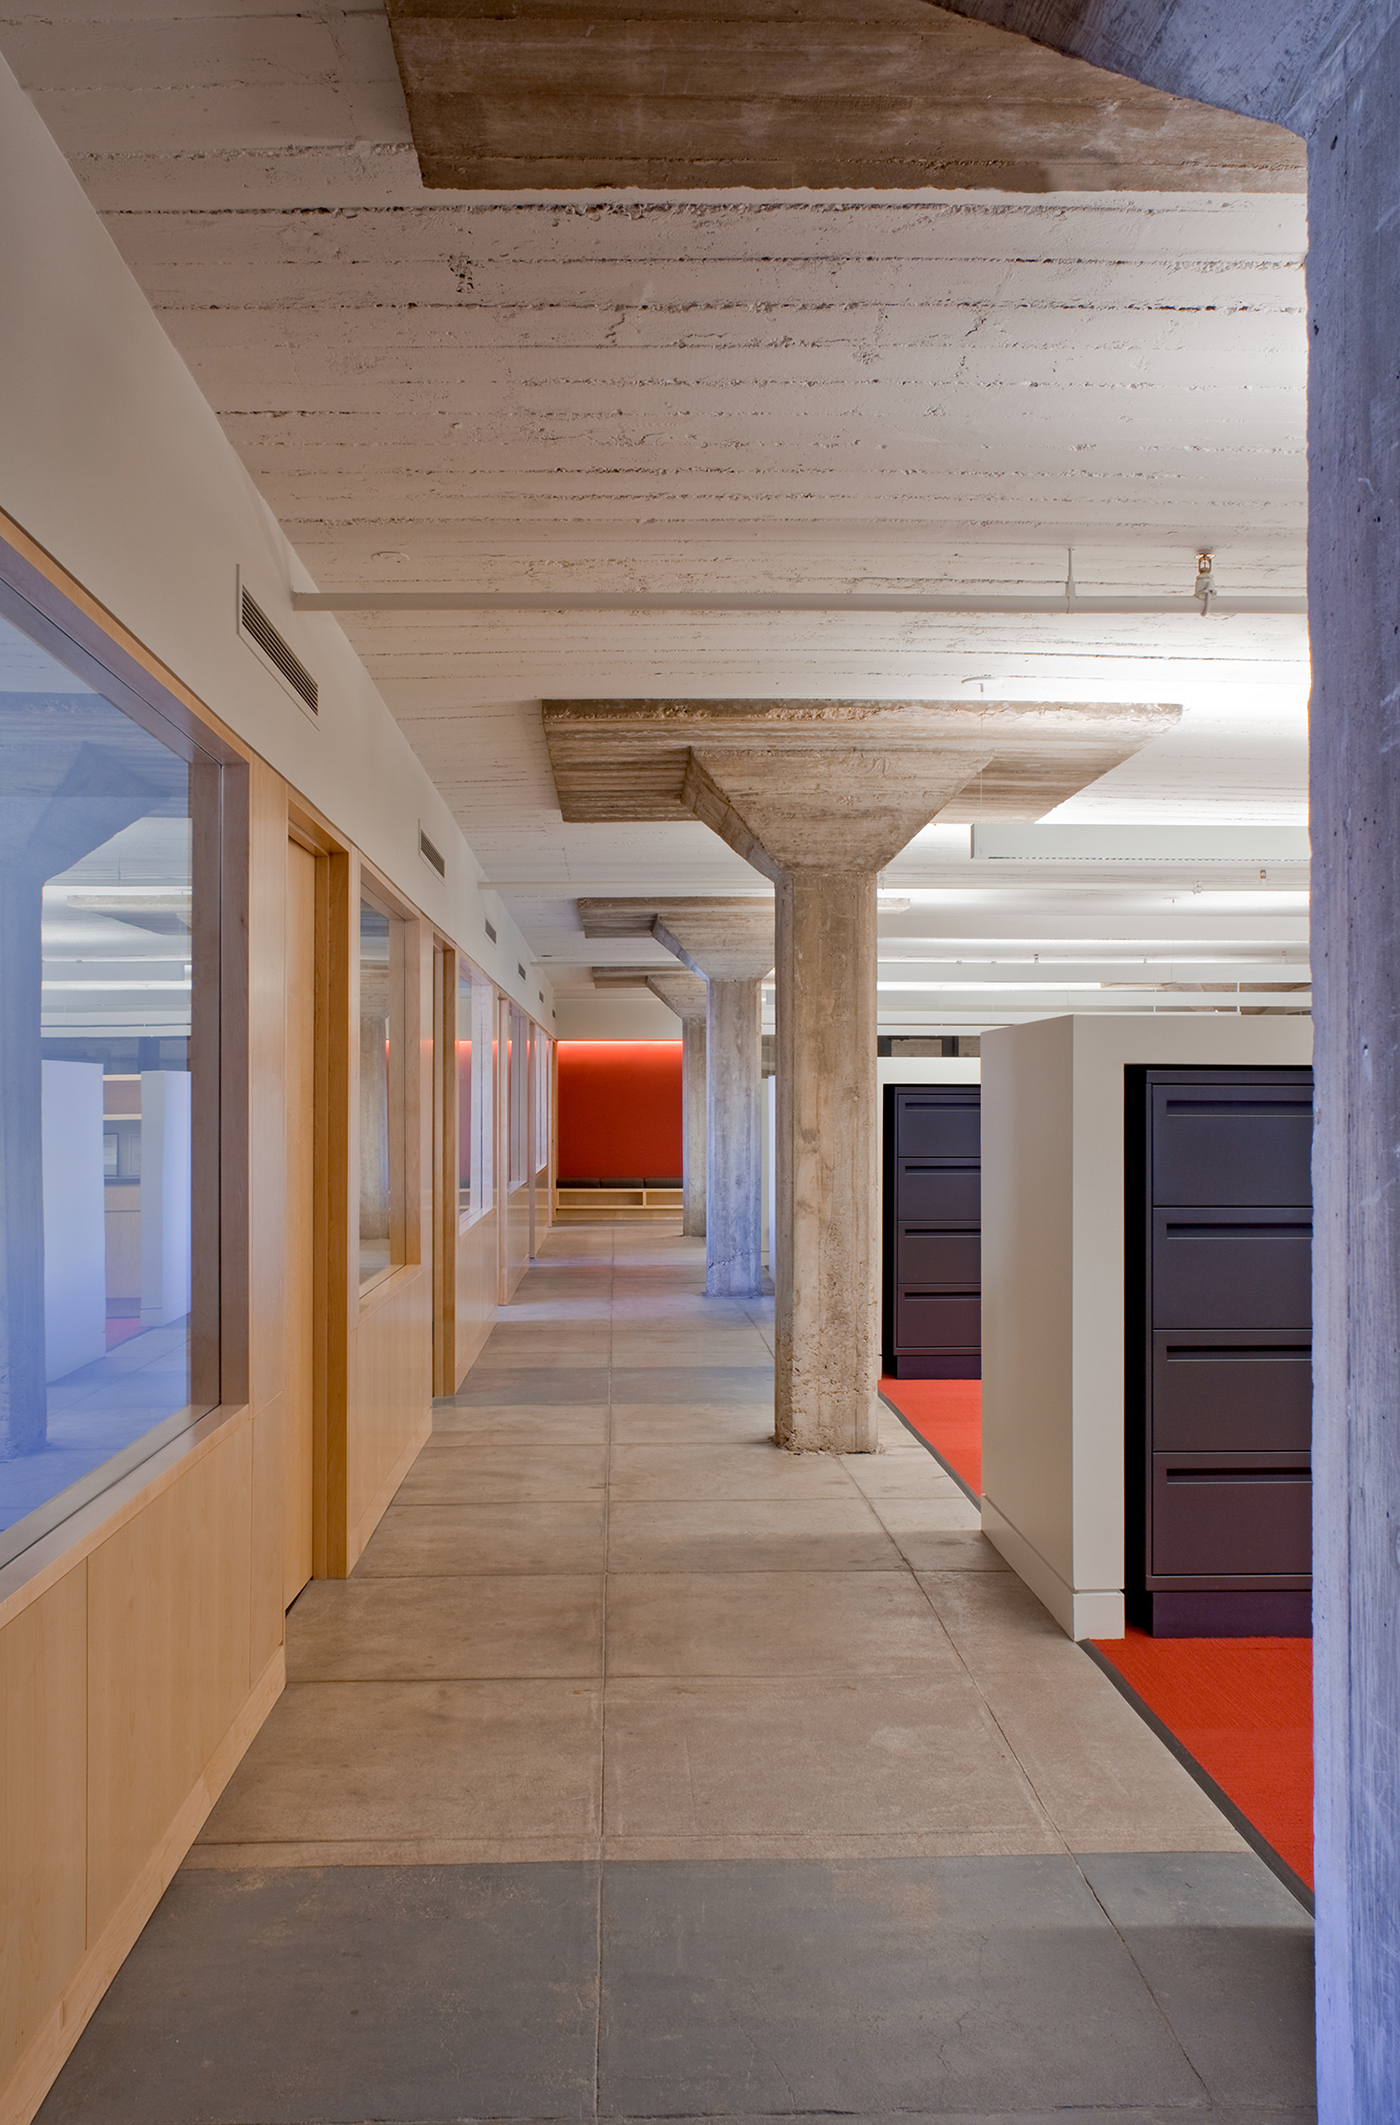 Office Design Office Space Contract design Office minimalist Minimalism industrial LOFT communal space midcentury MID-CENTURY modern contemporary concrete Sustainable